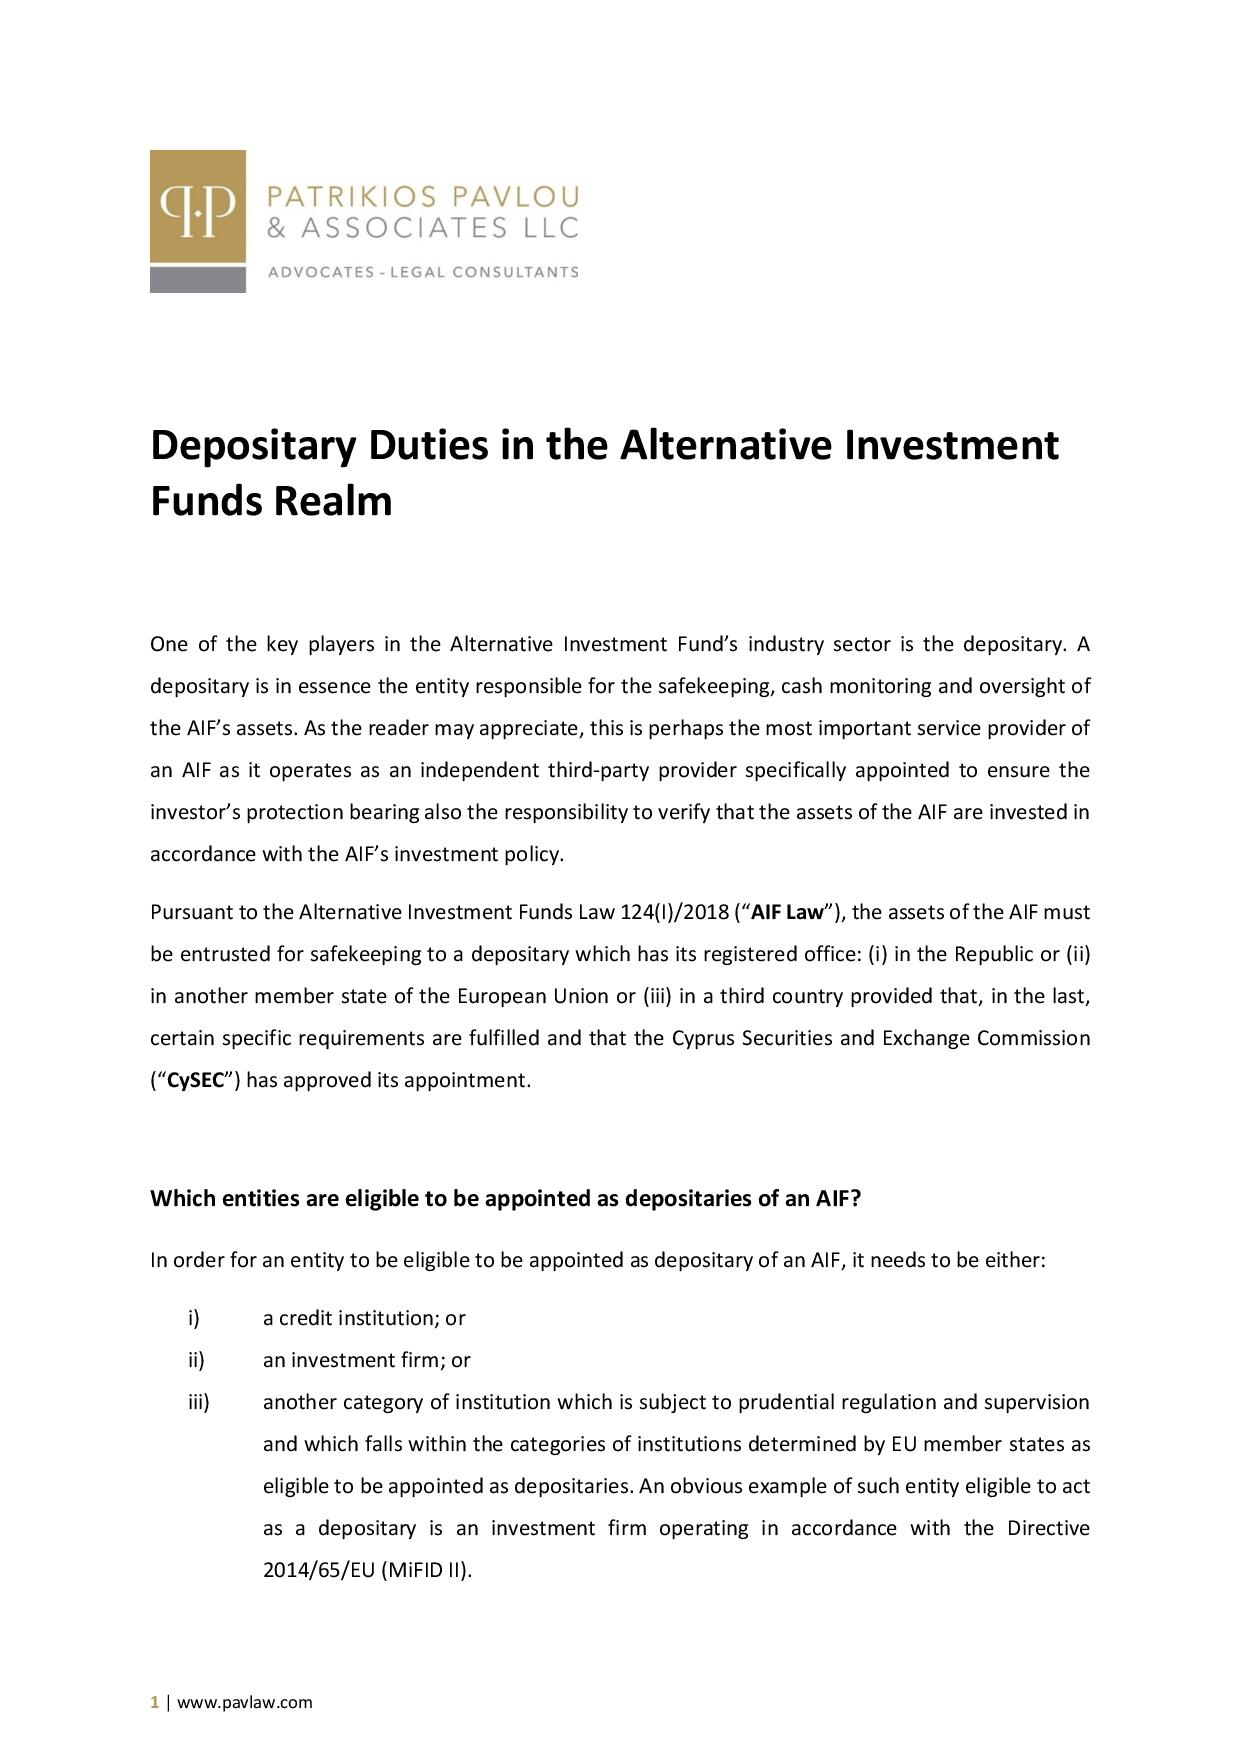 Patrikios Pavlou & Associates LLC: Depositary Duties in the Alternative Investment Funds Realm